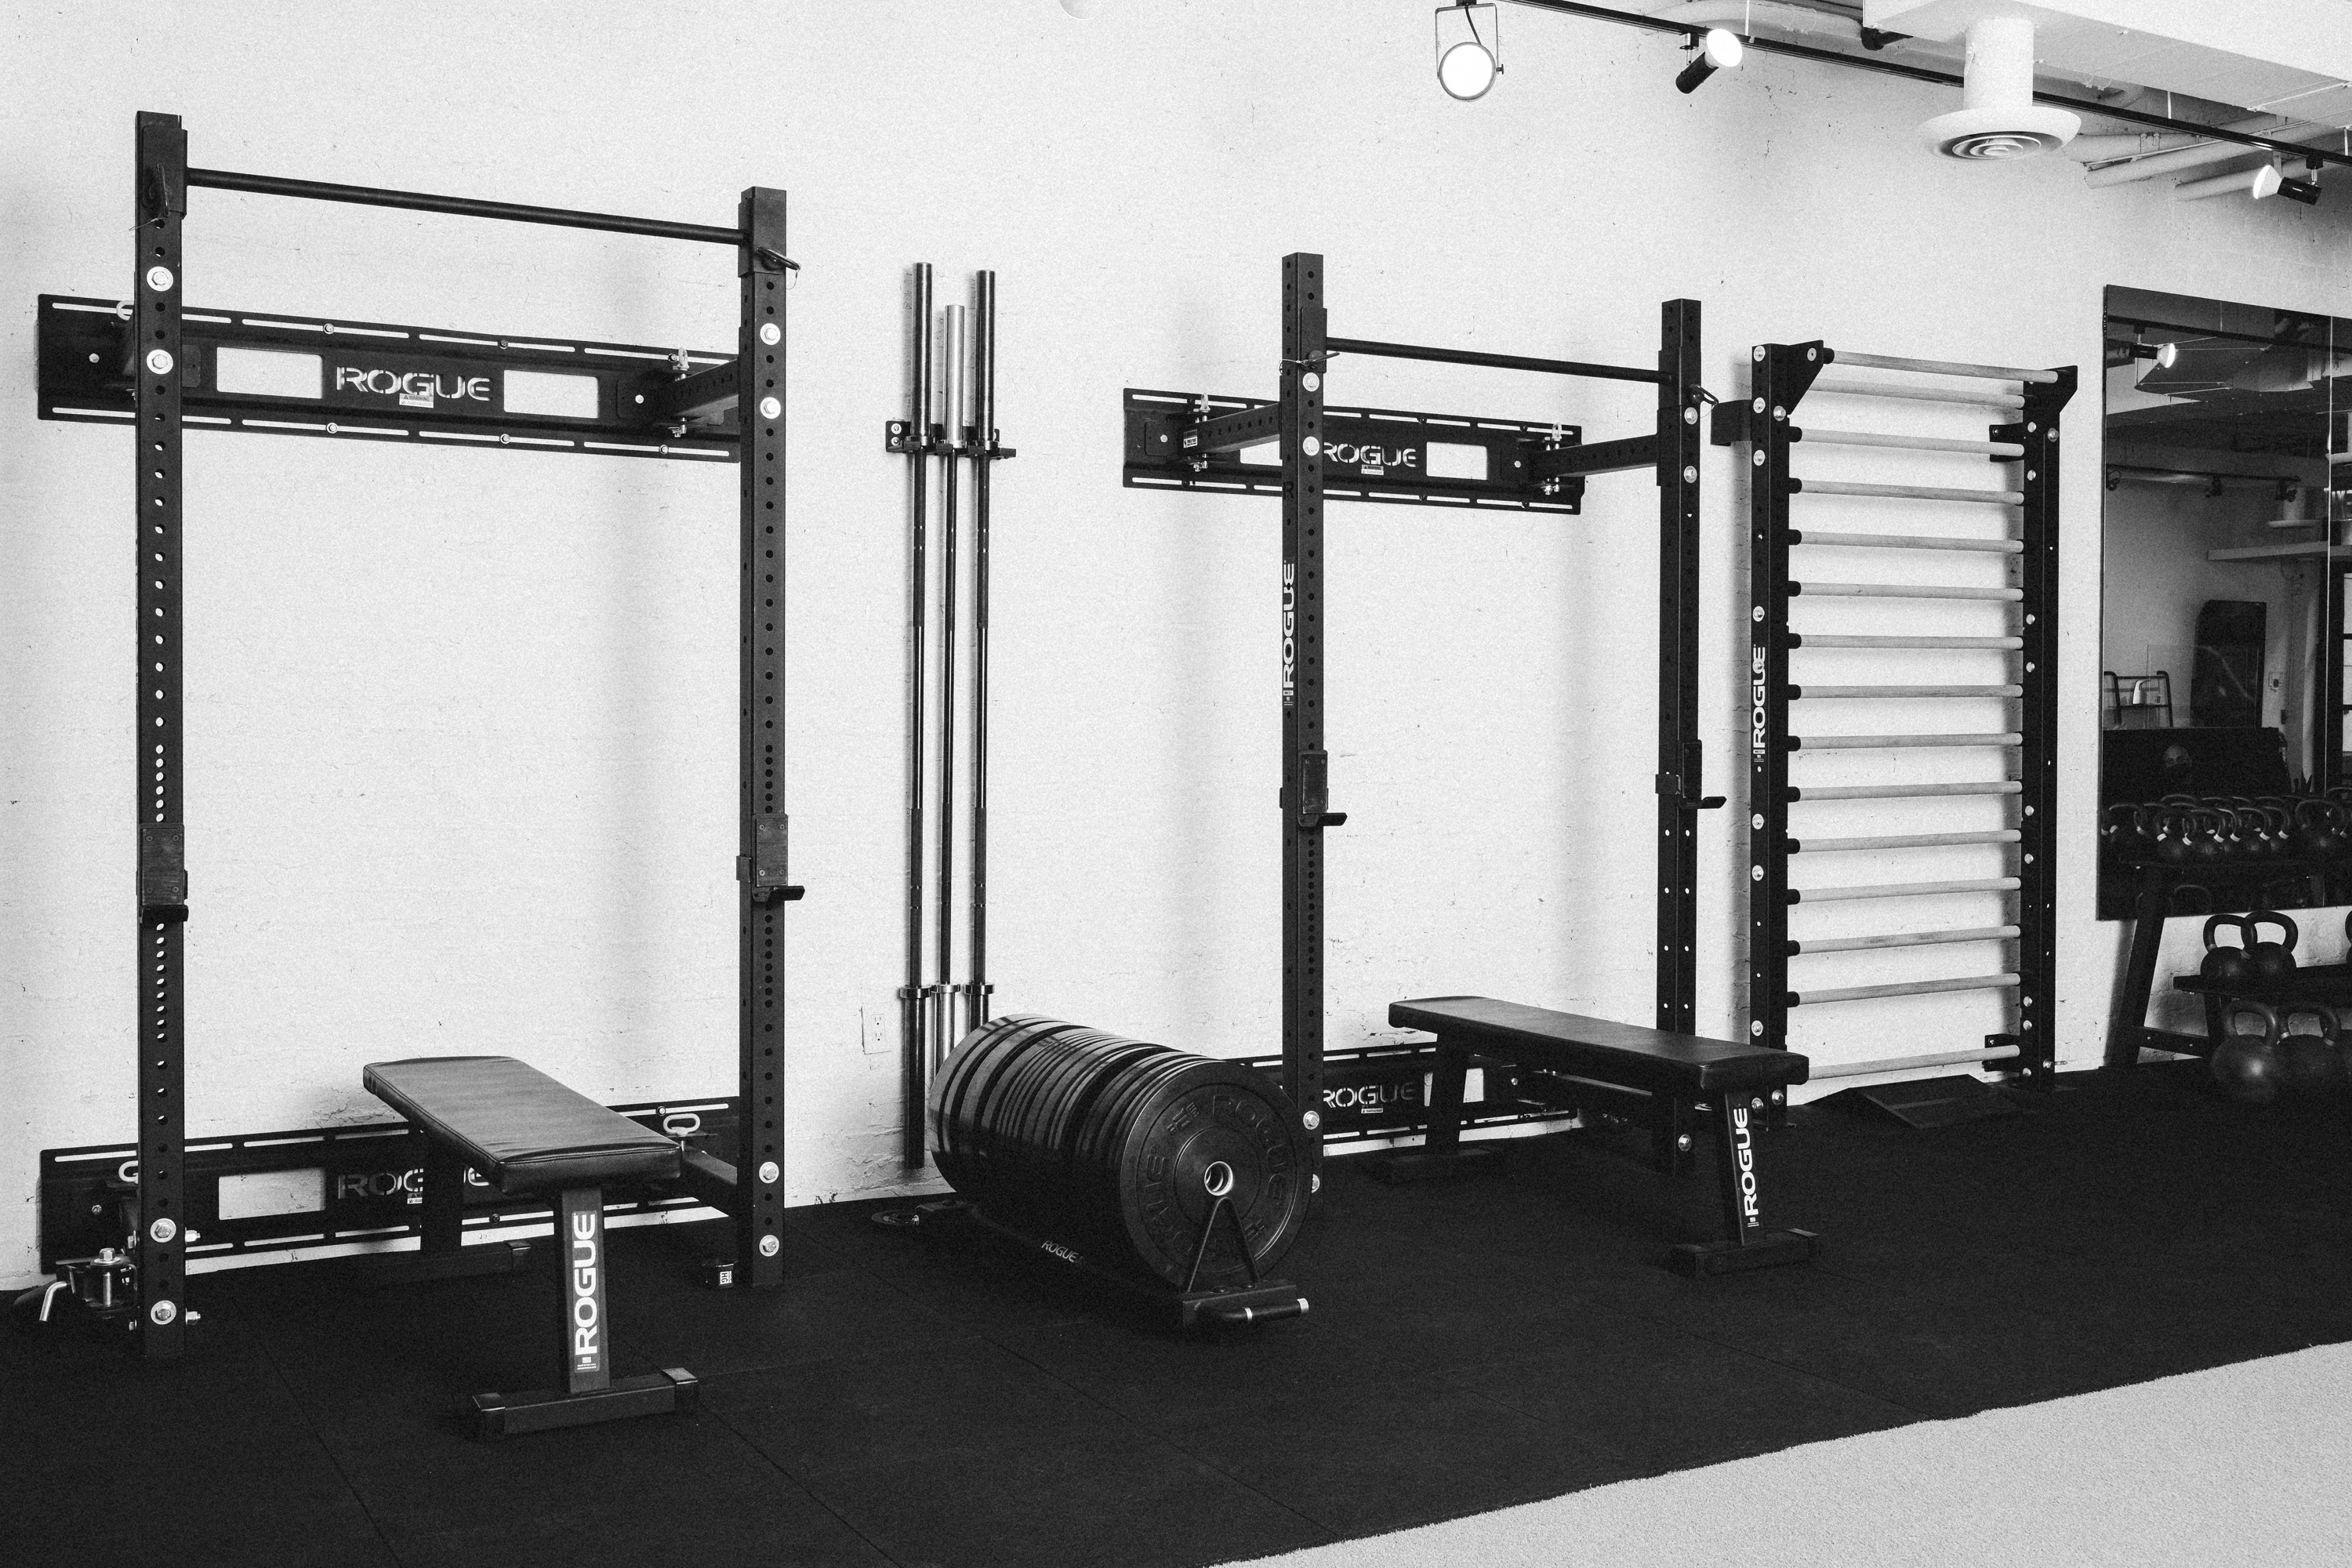 Workout stations at a fitness gym